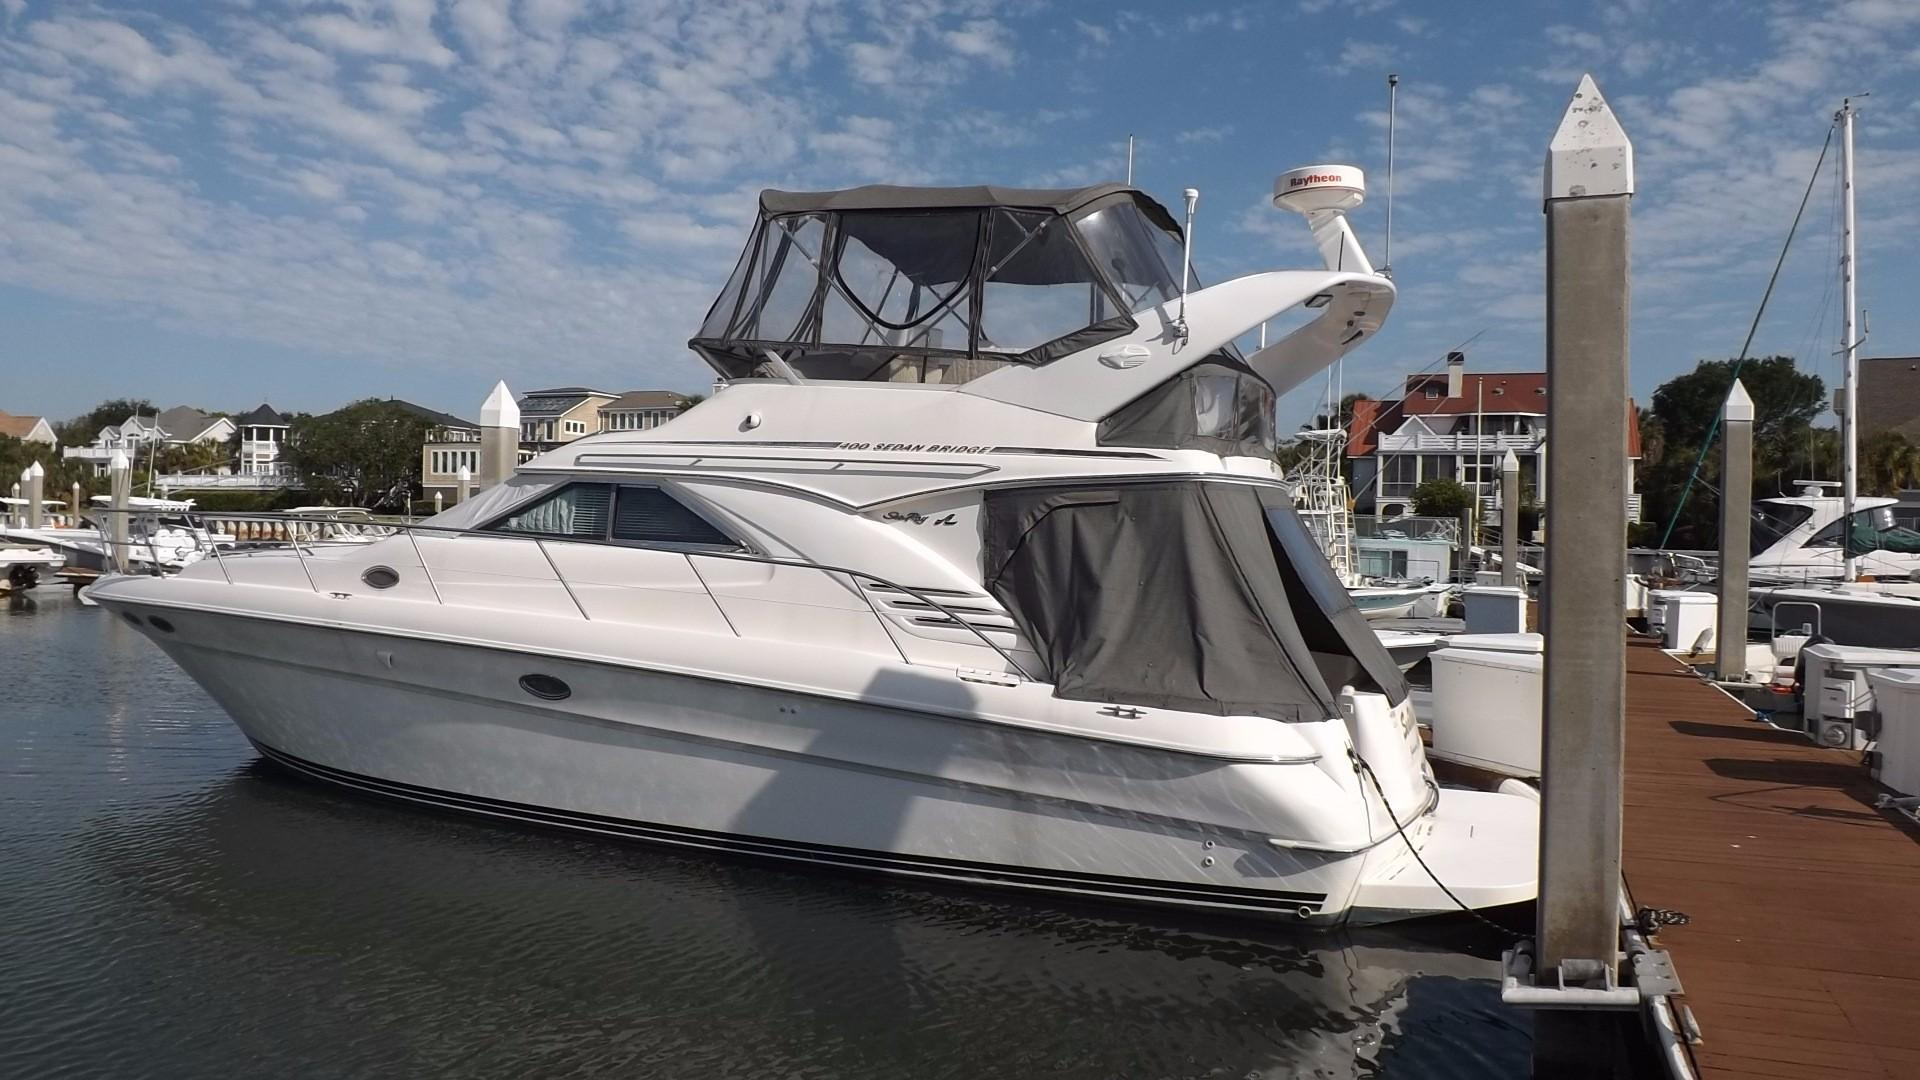 6231852_20170510134043621_1_XLARGE&w=924&h=693&t=1494452691000 1997 sea ray 400 sedan bridge power boat for sale www yachtworld com  at crackthecode.co